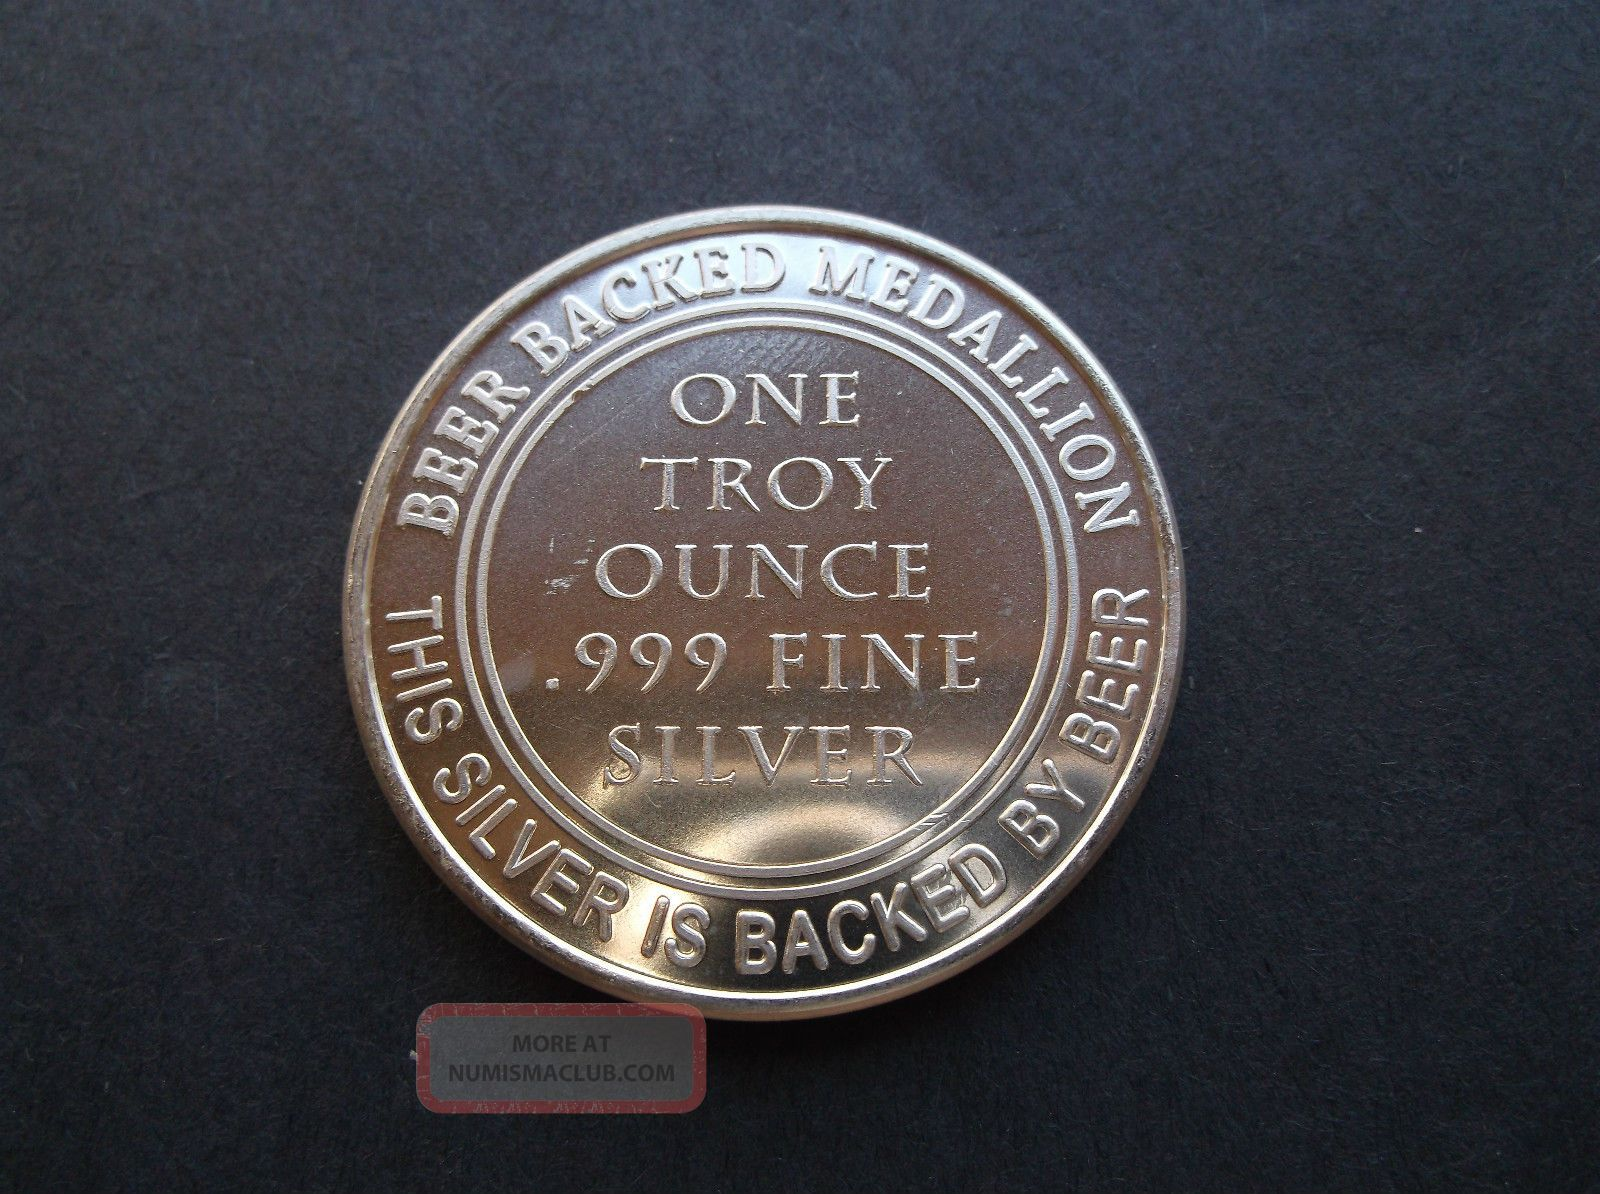 Universal Beer Medallon One Troy Ounce 999 Fine Silver